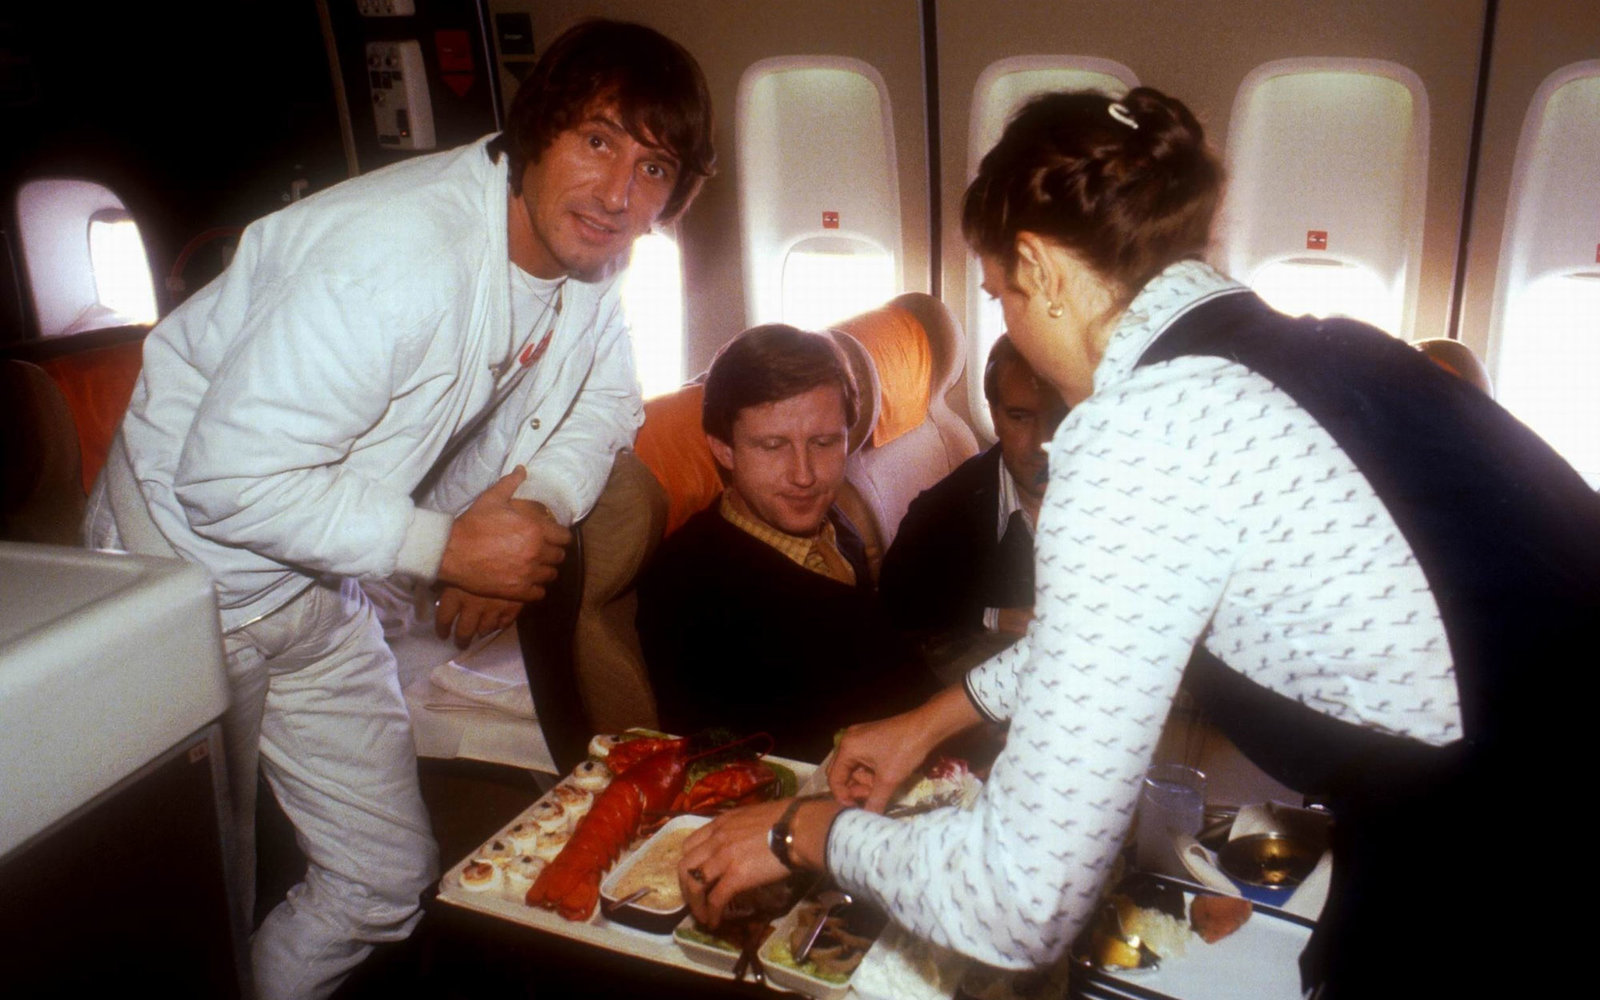 Udo Jürgens (li.), Name auf Wunsch (mi.), Stewardess, Flug nach Los Angeles, Californien, USA, 01.09.1980, Essen, Hummer, Sänger, Schlagersänger, Promis, Prominente, Prominenter, (Photo by Peter Bischoff/Getty Images)